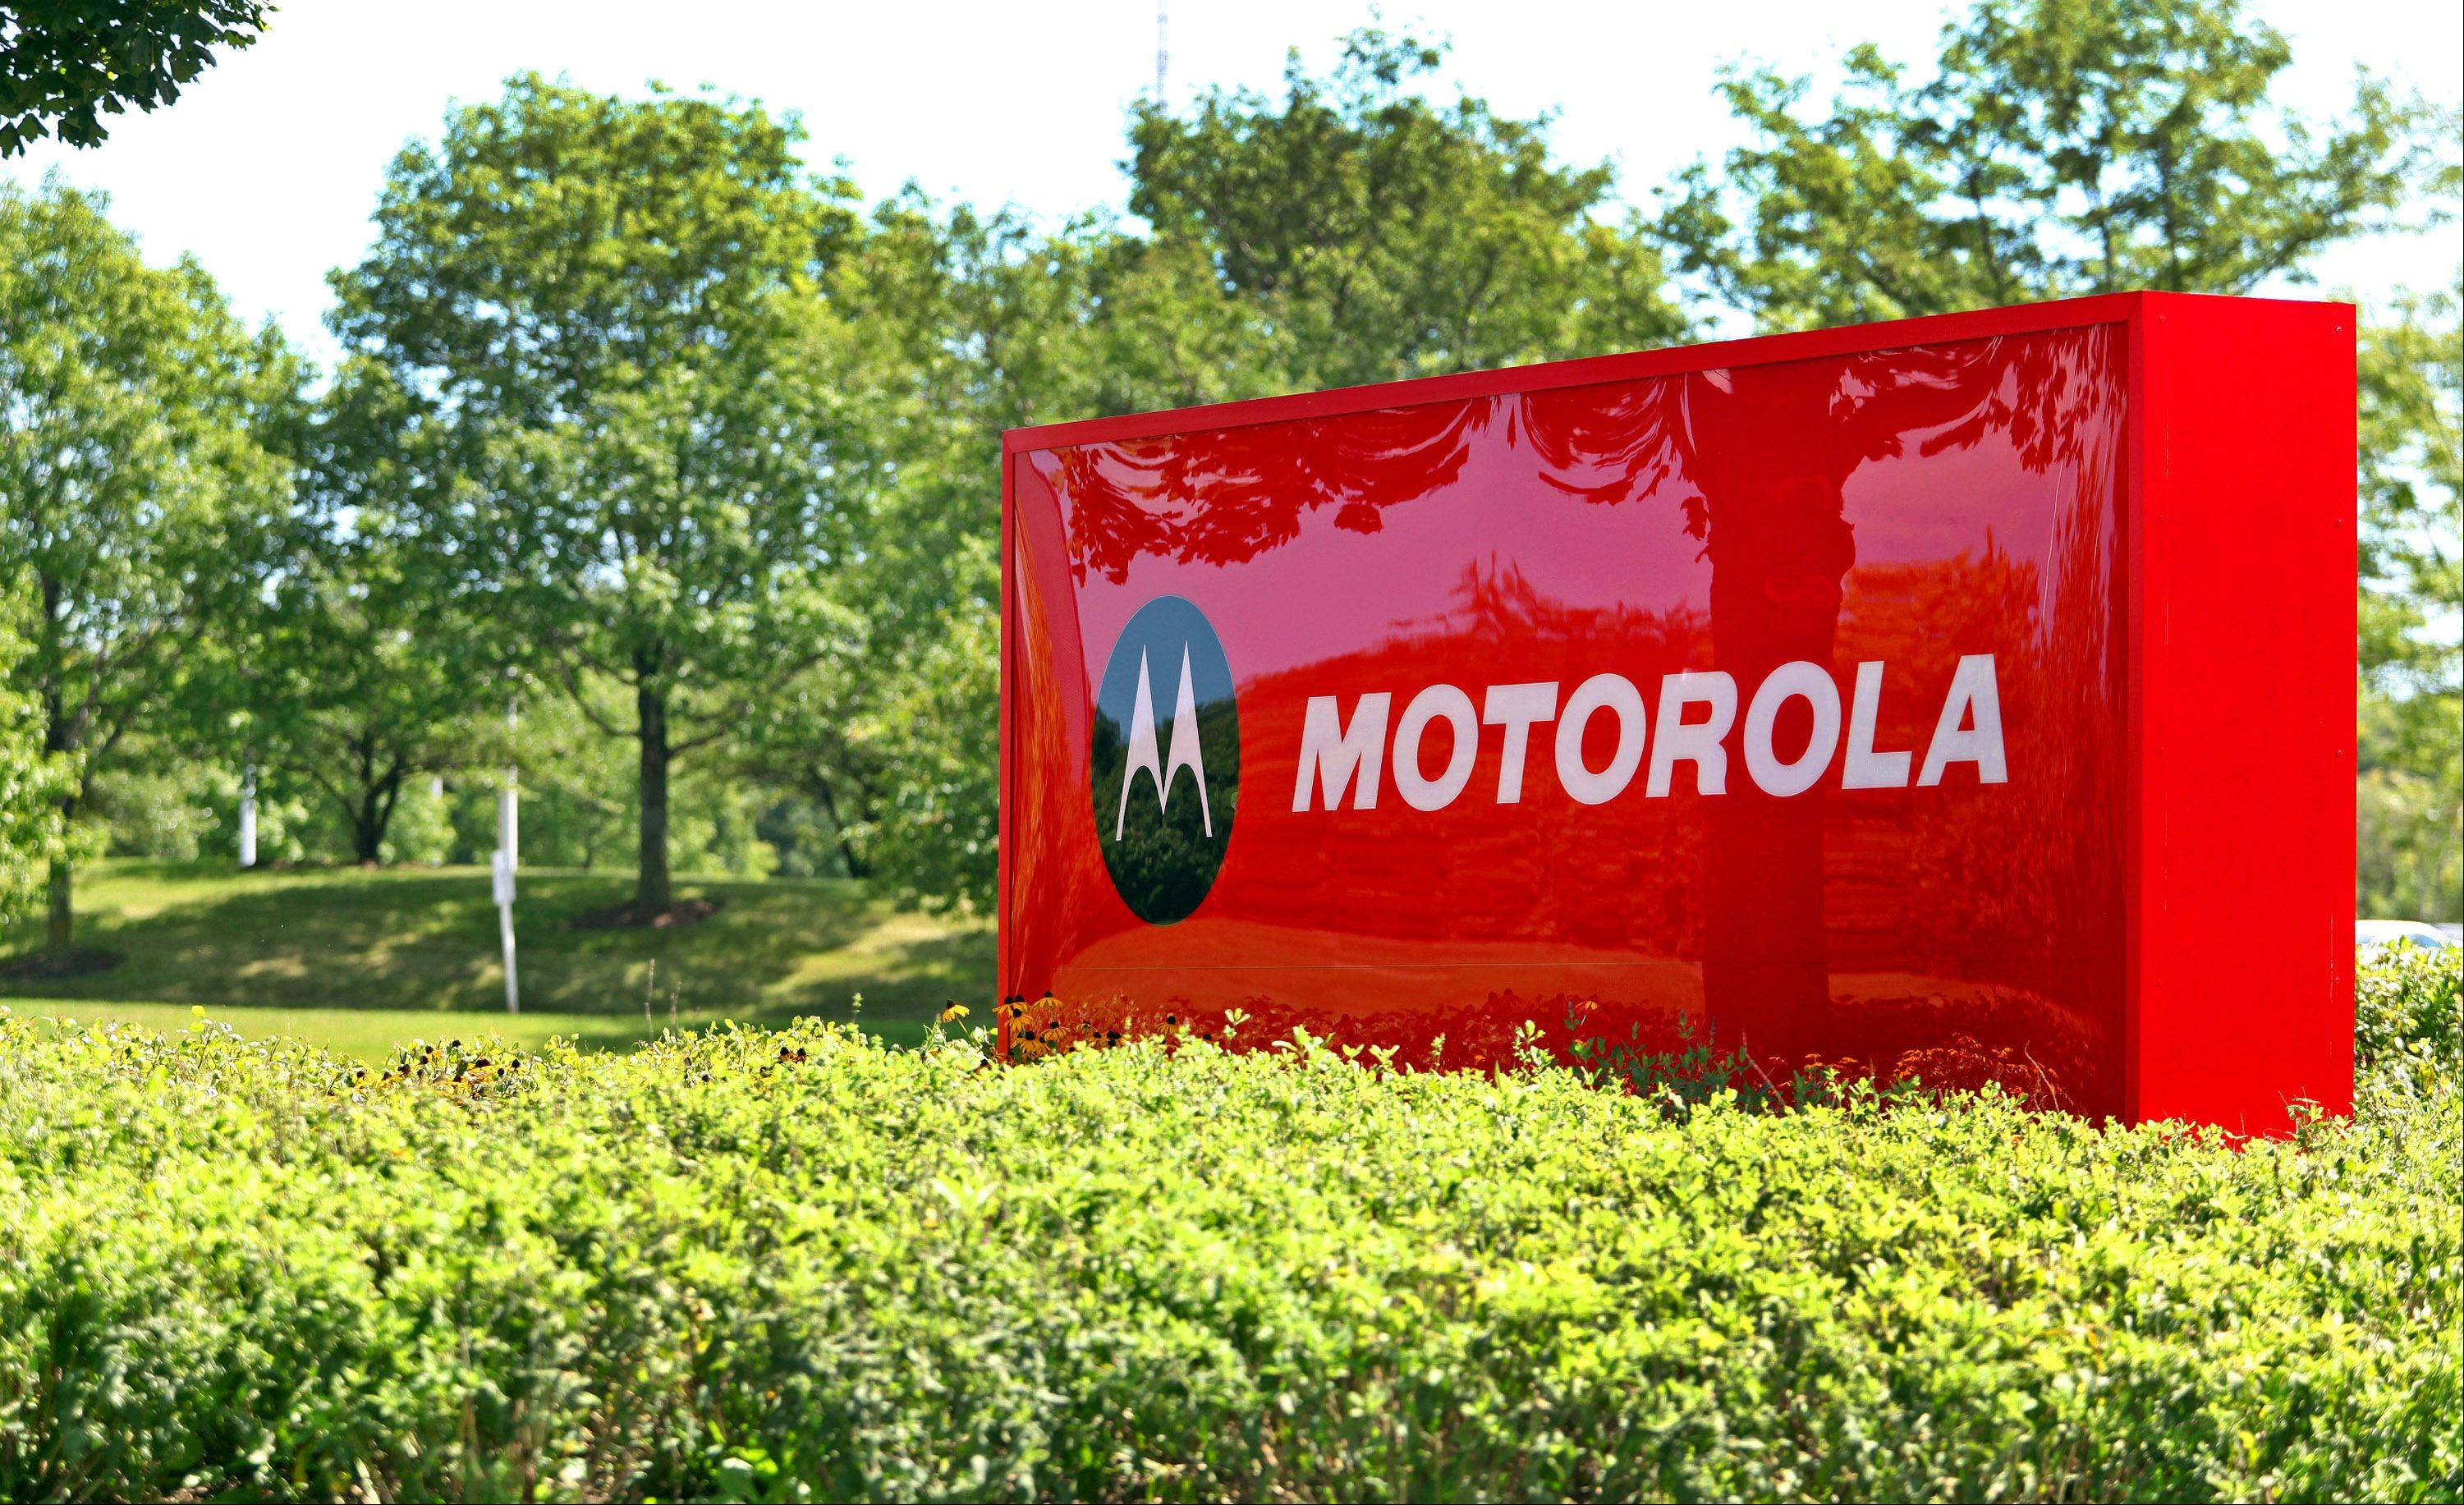 Motorola Mobility Holdings Inc., headquartered in Libertyville, has been accused in a lawsuit of not getting enough from Google, which bought the company for $12.5 billion in its biggest deal Monday, gaining mobile patents and expanding in the hardware business.